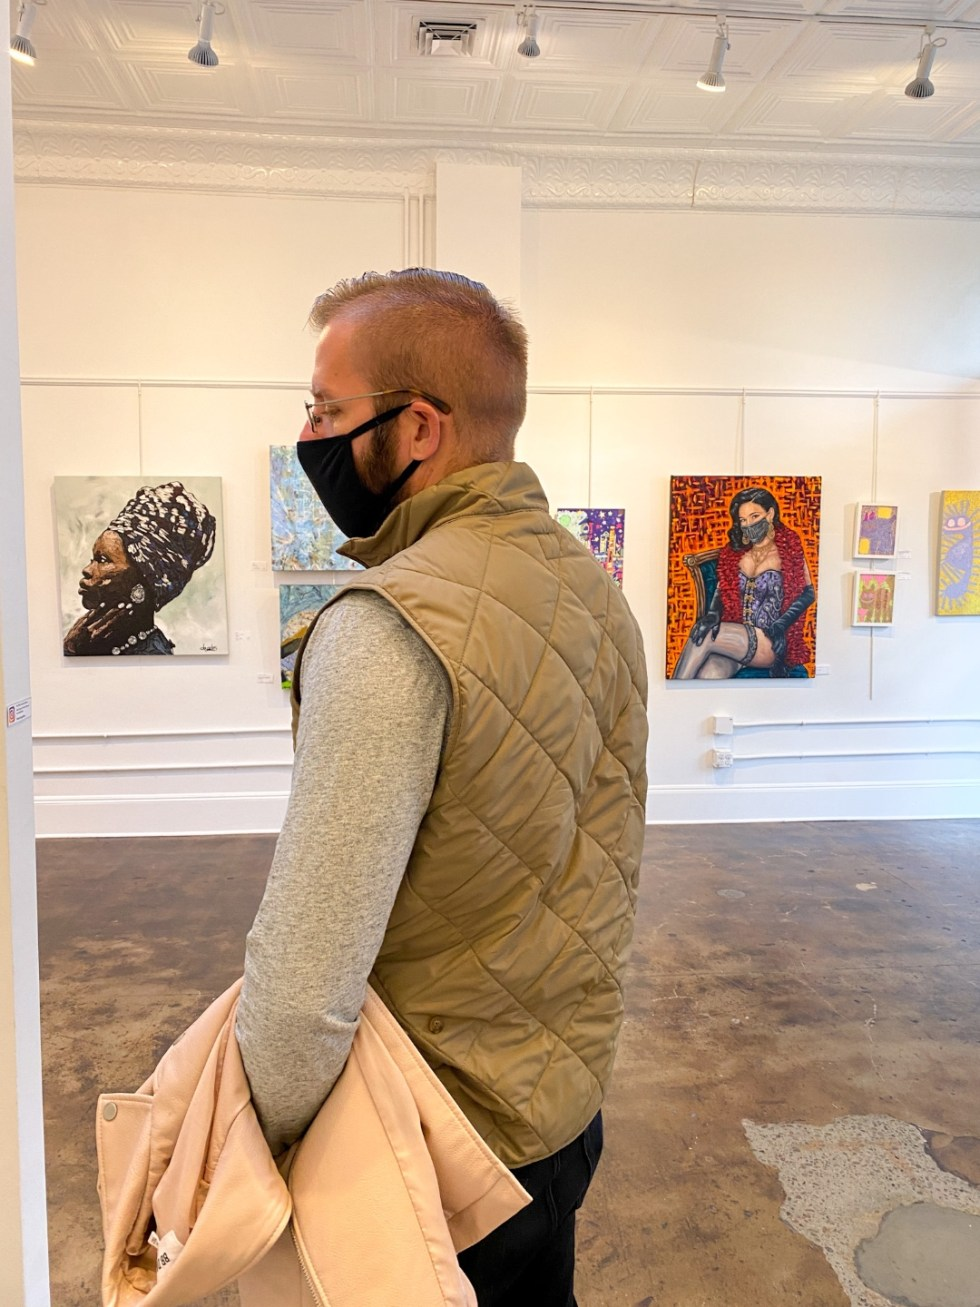 23 Awesome Things To Do in Durham - I'm Fixin' To - @imfixintoblog | Things to do in Durham by popular NC travel blog, I'm Fixin' To: image of a man walking through a Durham art gallery.